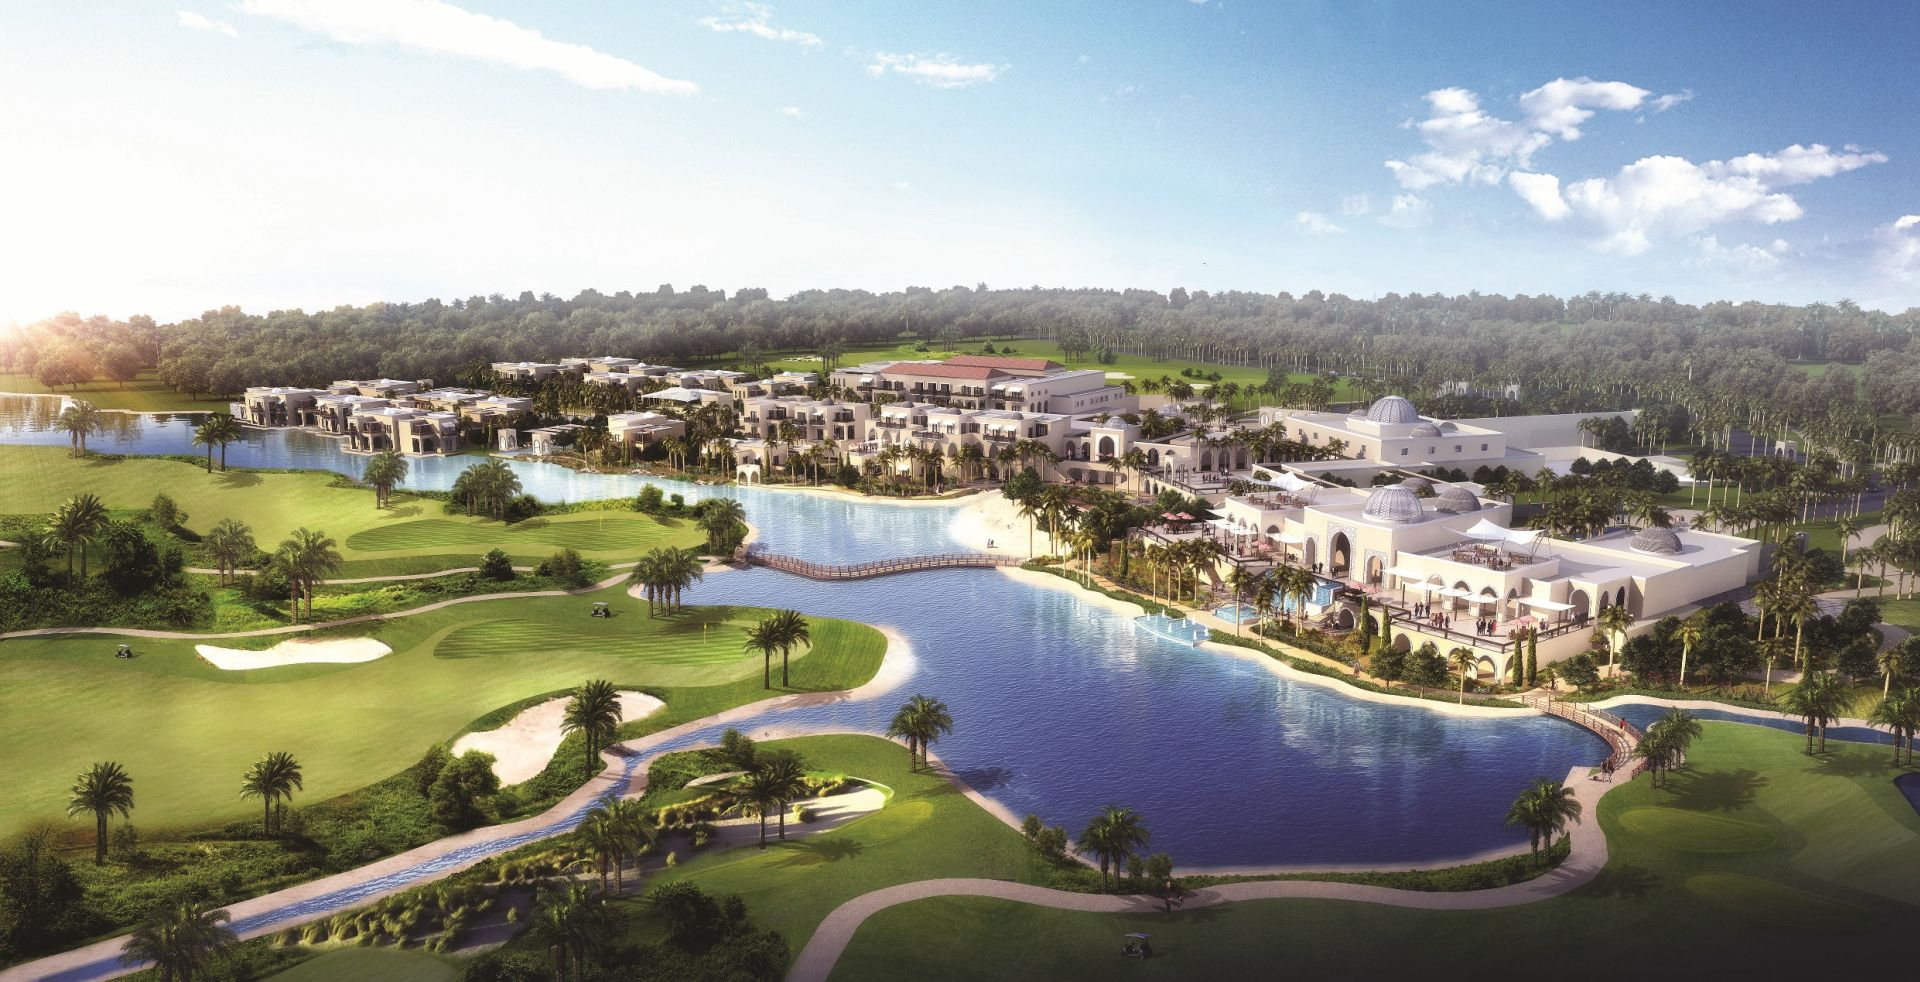 Tiger Woods To Design Golf Course In Dubai For Damac